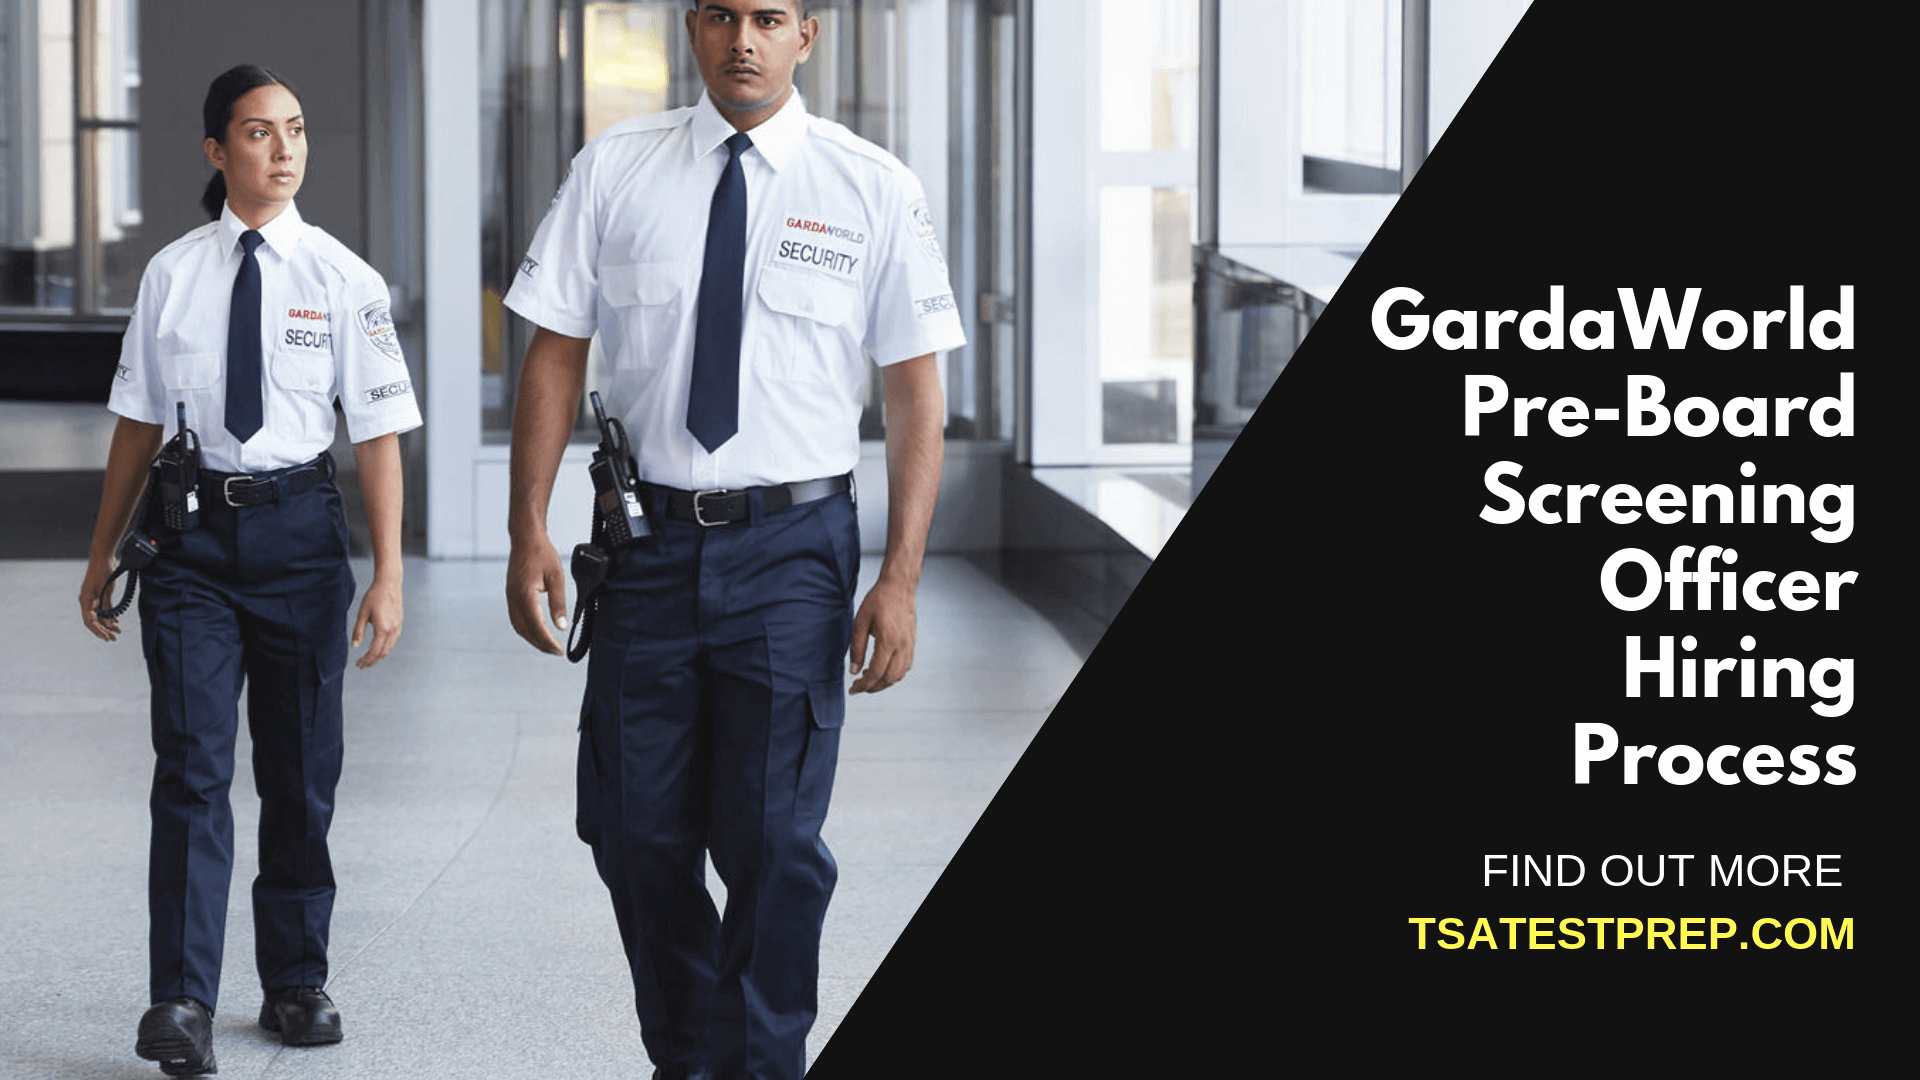 GardaWorld Pre-Board Screening Officer Hiring Process